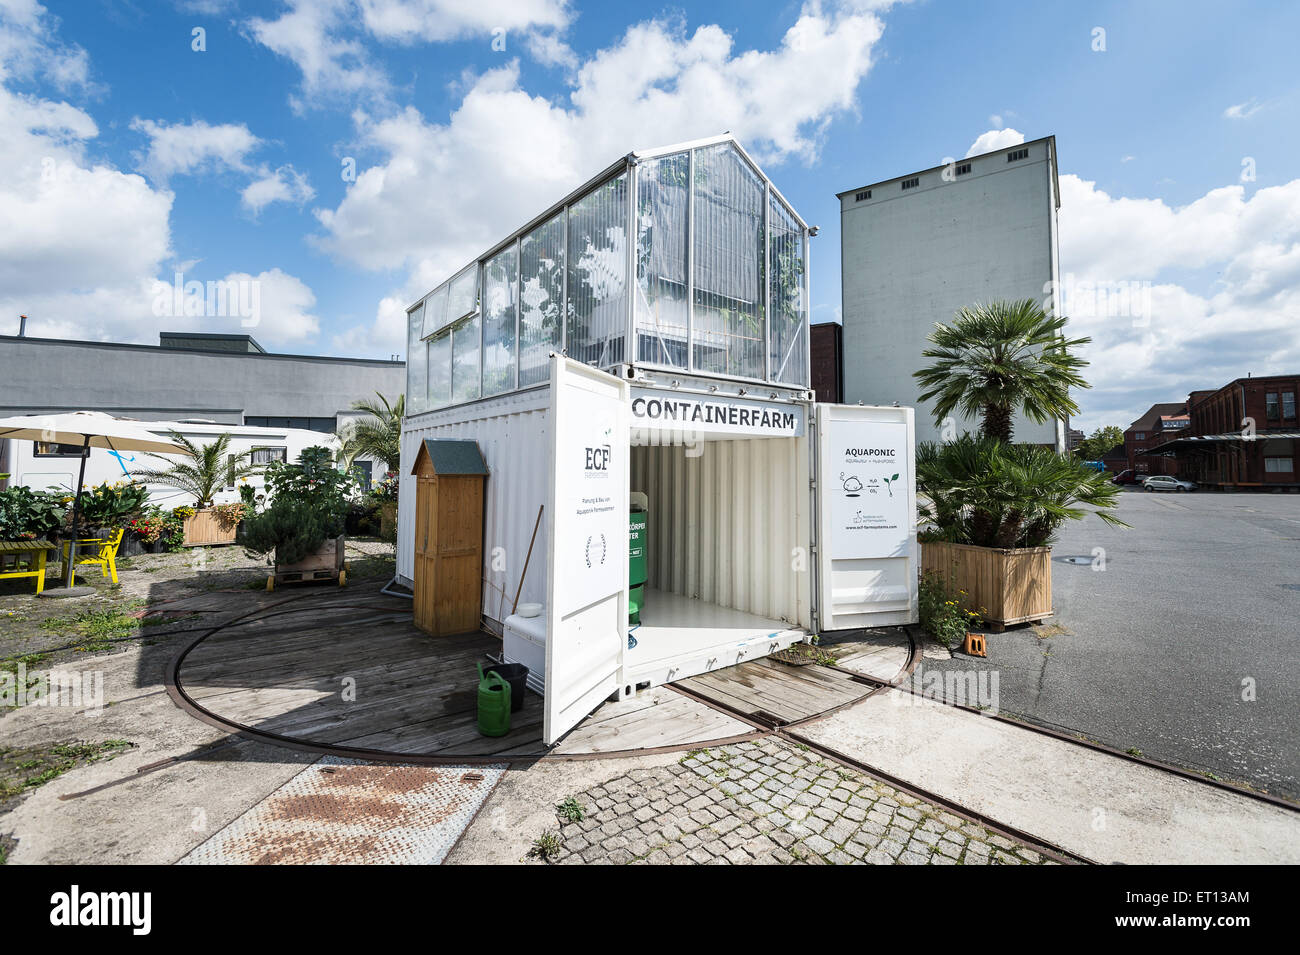 berlin germany a container farm of ecf farm systems. Black Bedroom Furniture Sets. Home Design Ideas